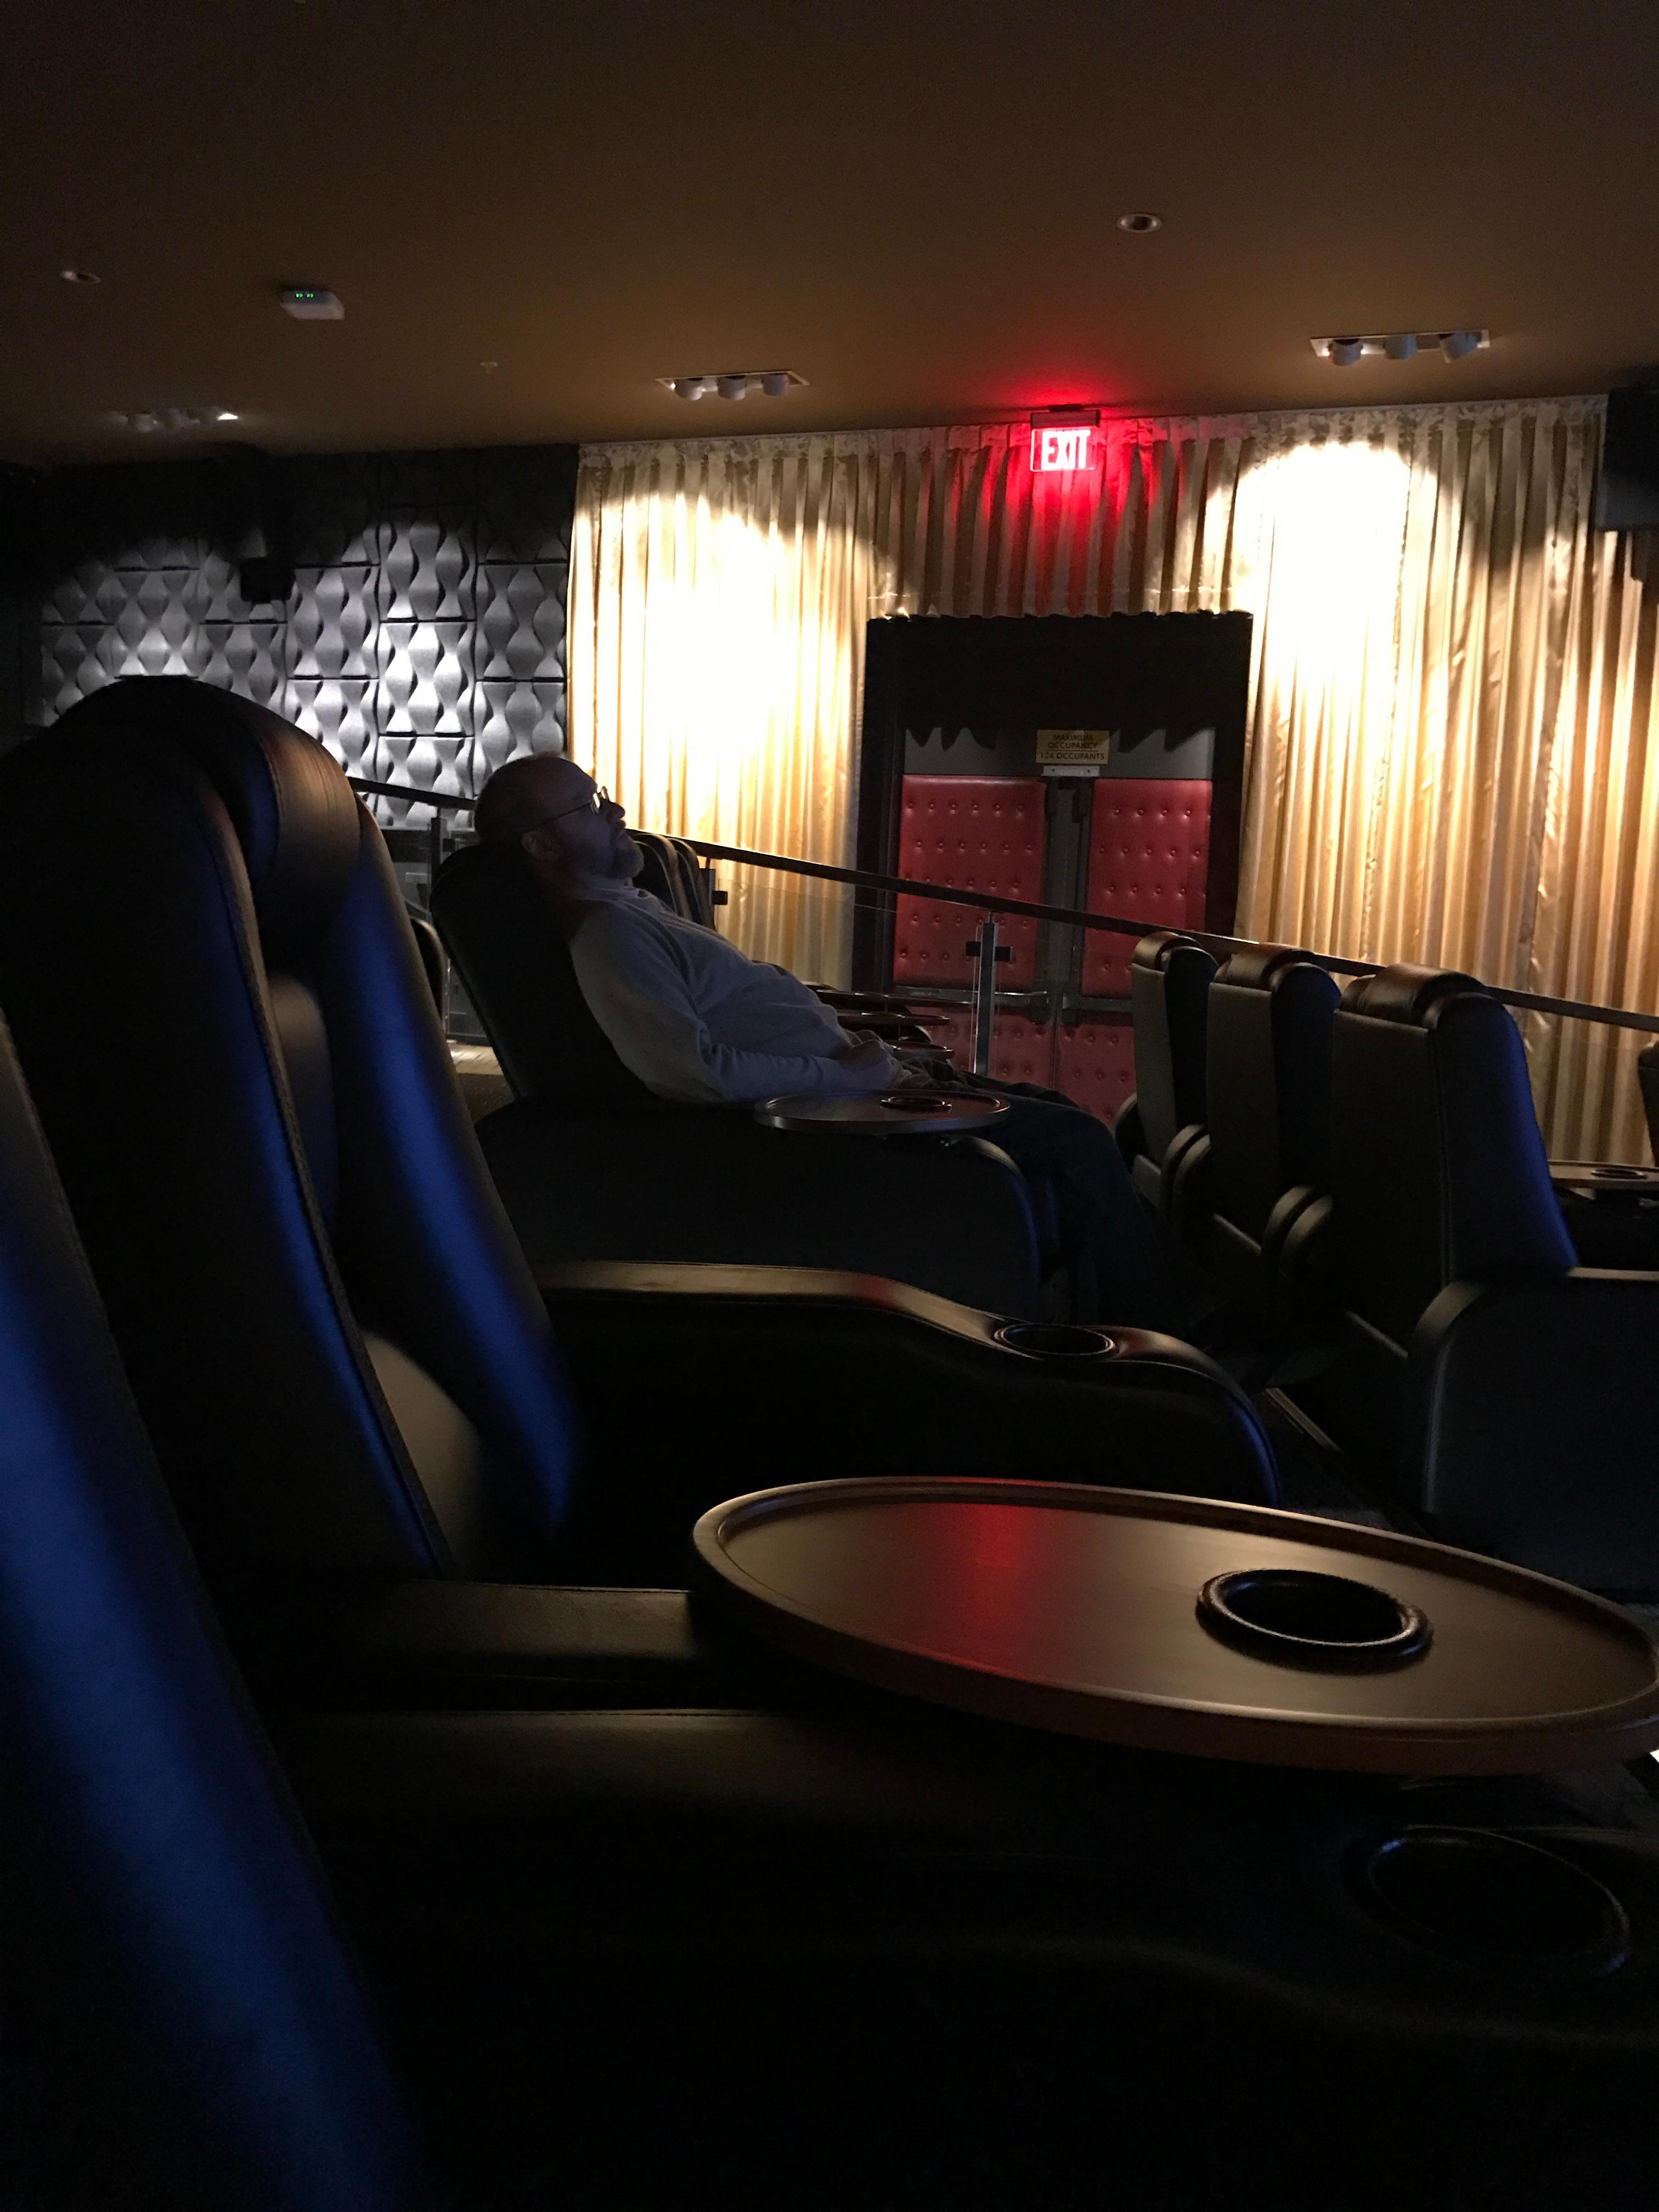 Theatre seating to watch the race